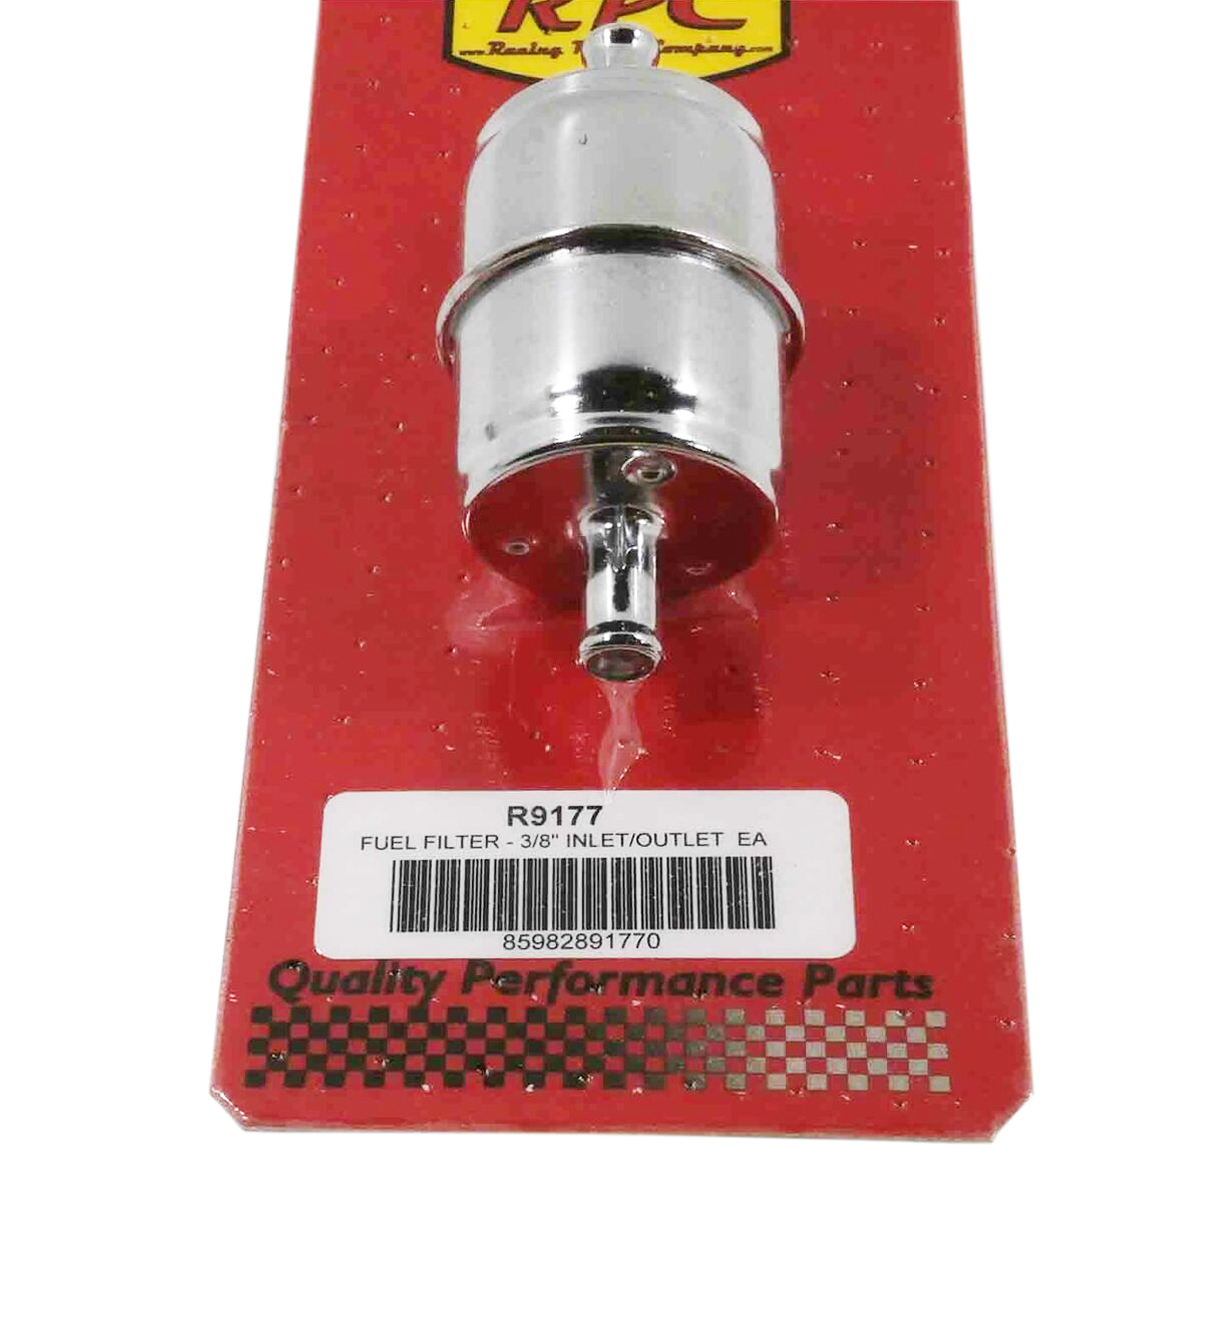 Racing Power Company R9177 Fuel Filter, In-Line, 10 Micron, Disposable, Paper Element, 3/8 in Hose Barb Inlet / Outlet, Steel, Chrome, Each